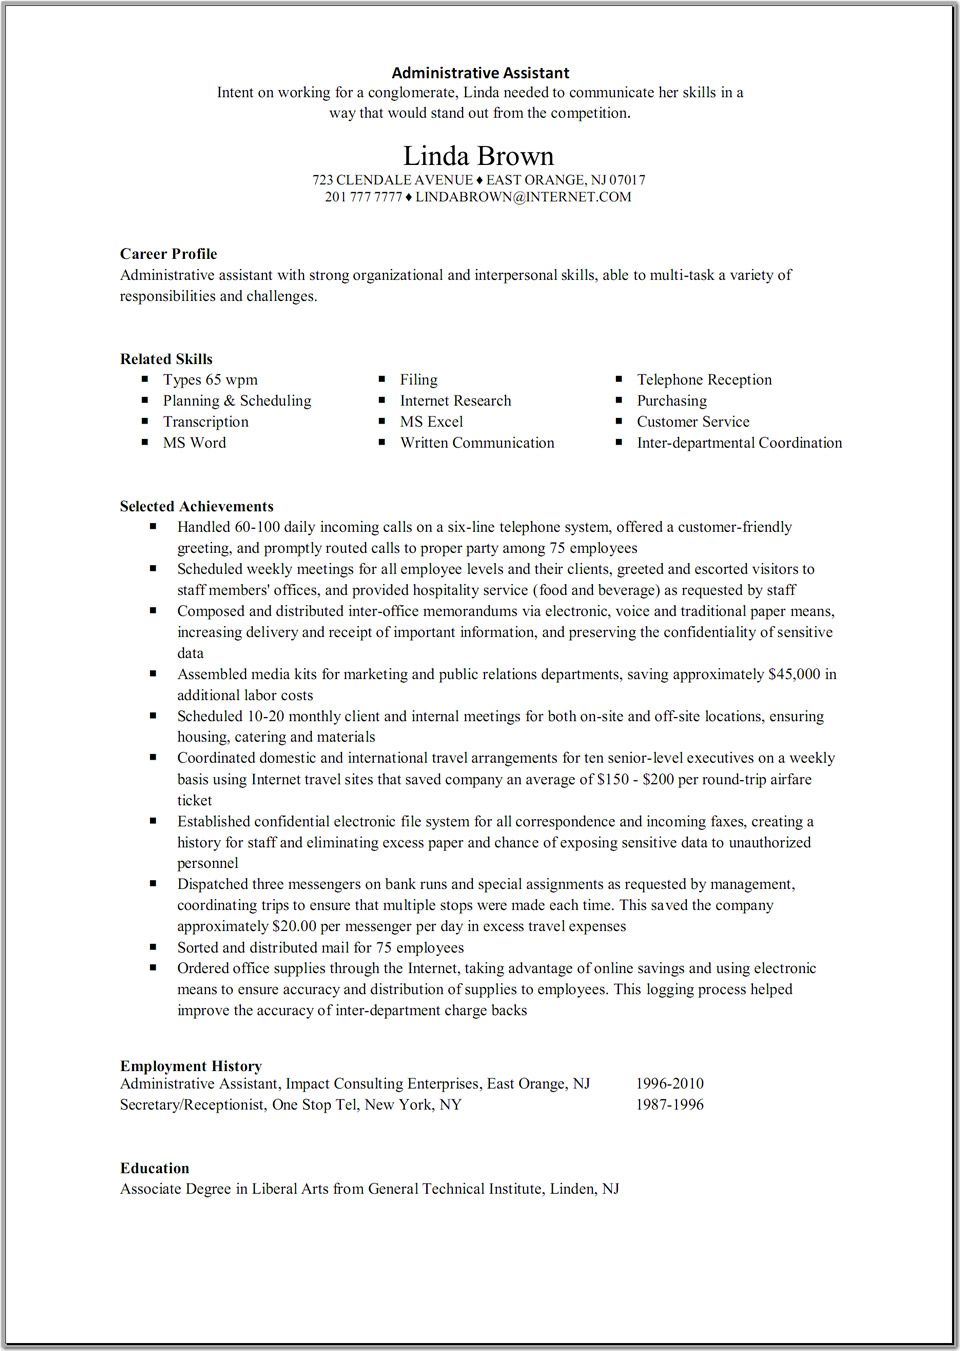 Administrative Secretary Resume Classy Great Administrative Assistant Resumes  Administrative Assistant .